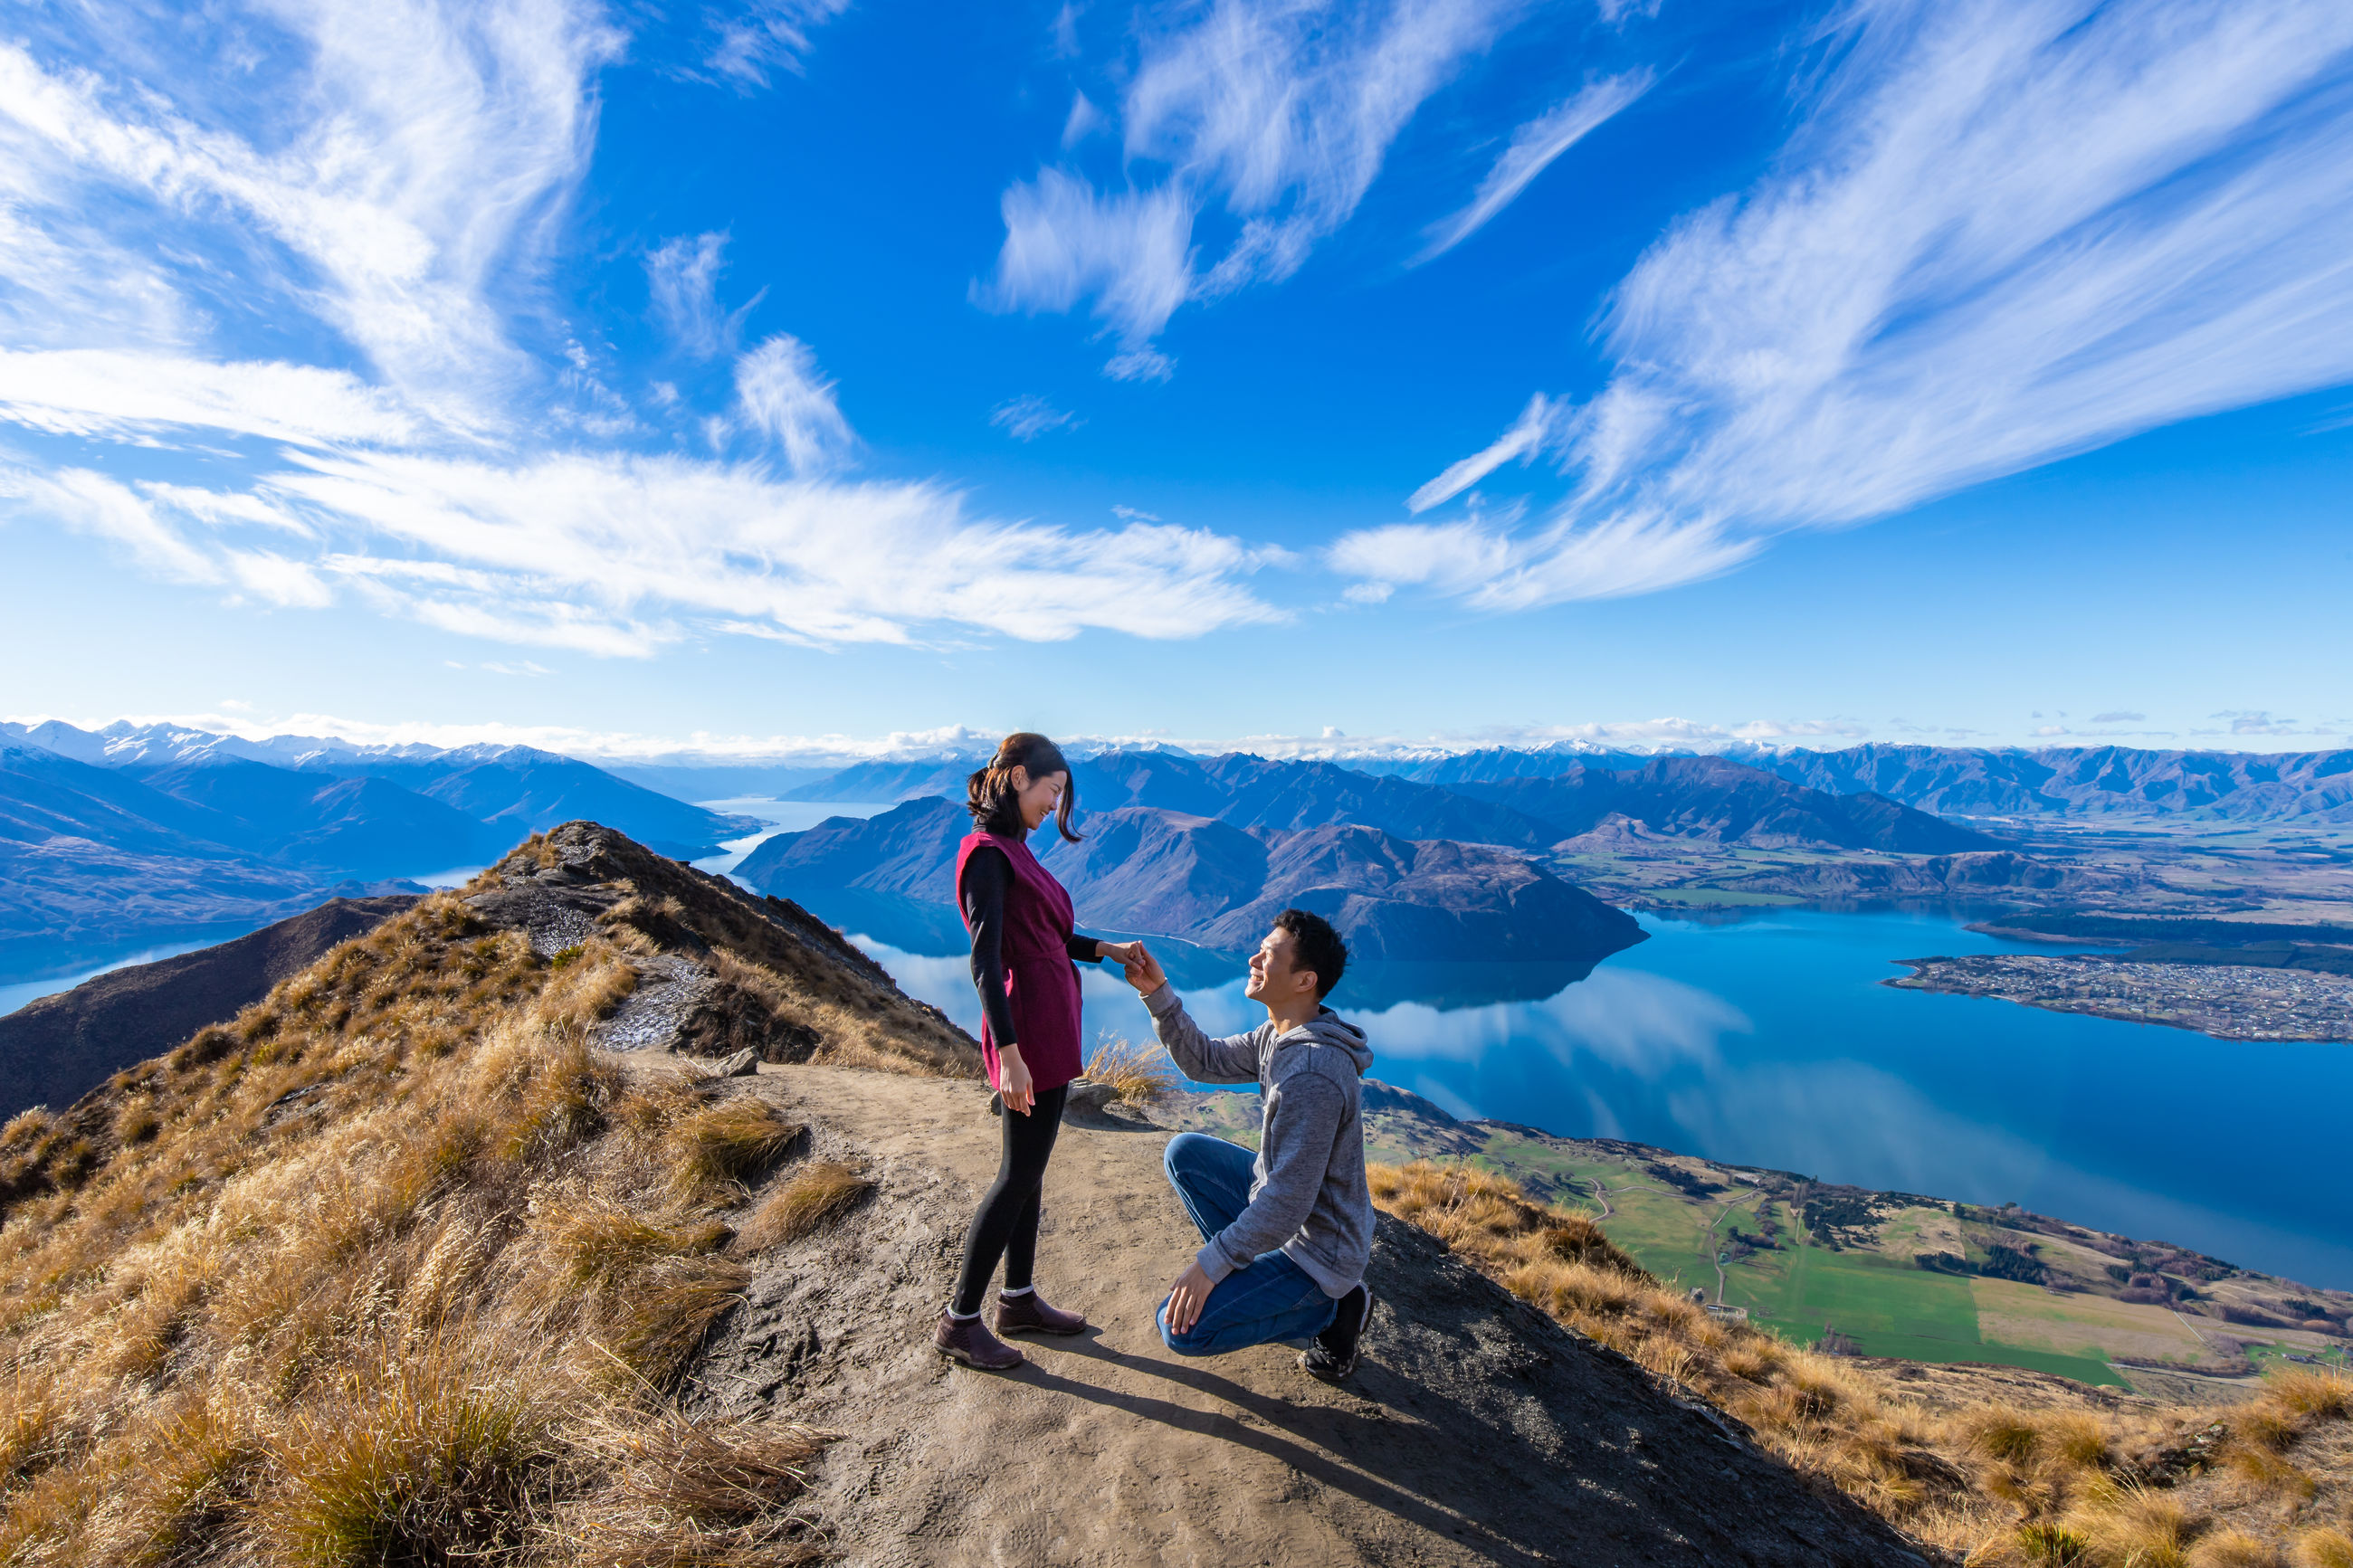 High angle view of boyfriend proposing girlfriend on hill against sky